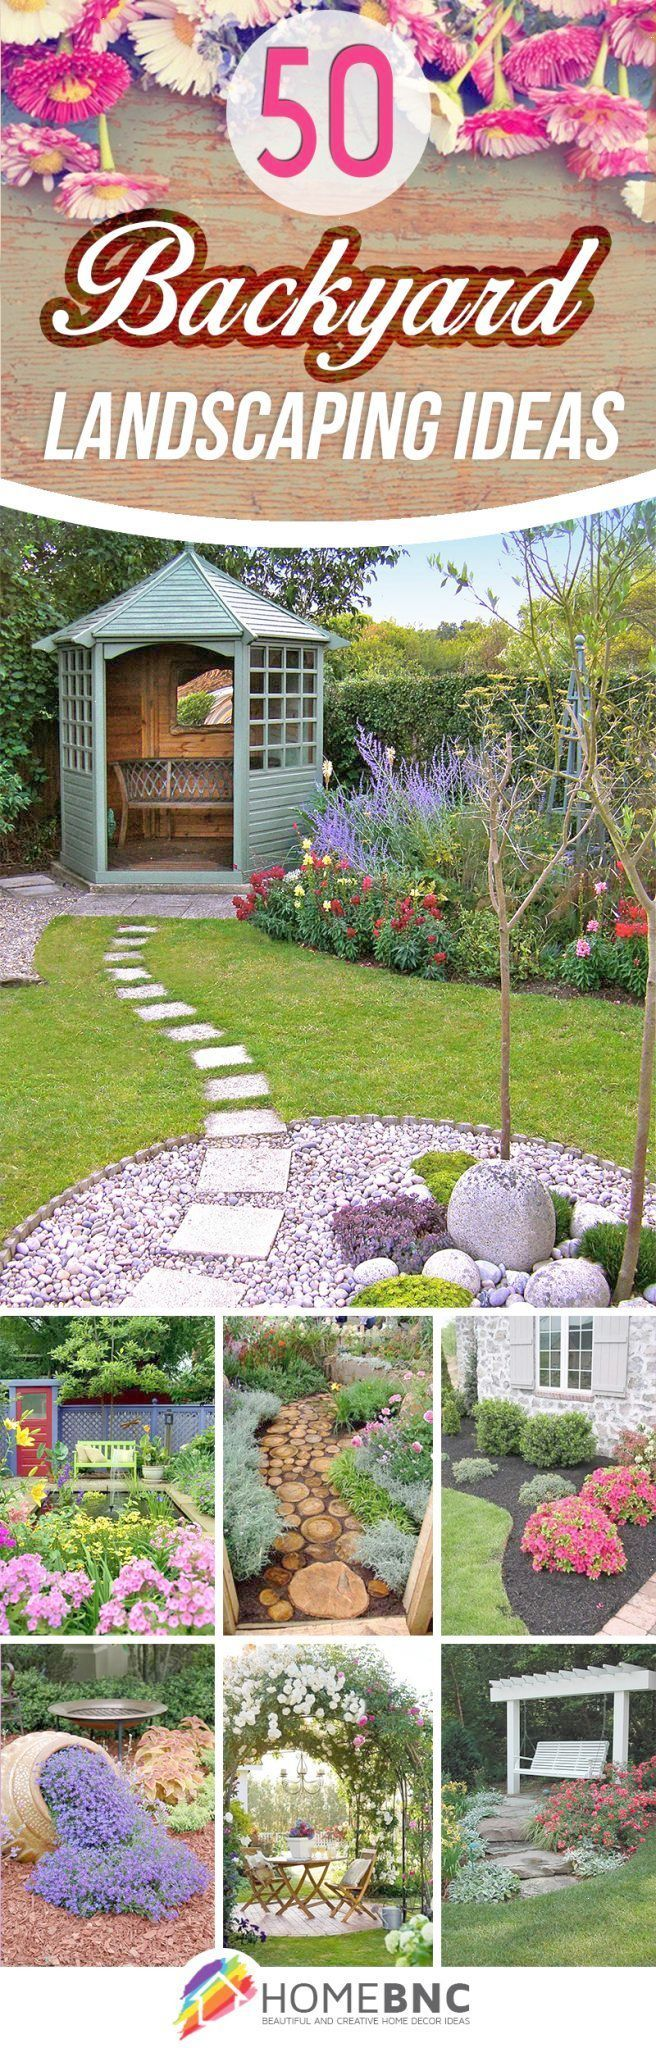 Backyard landscaping design ideas landscape pinterest backyard